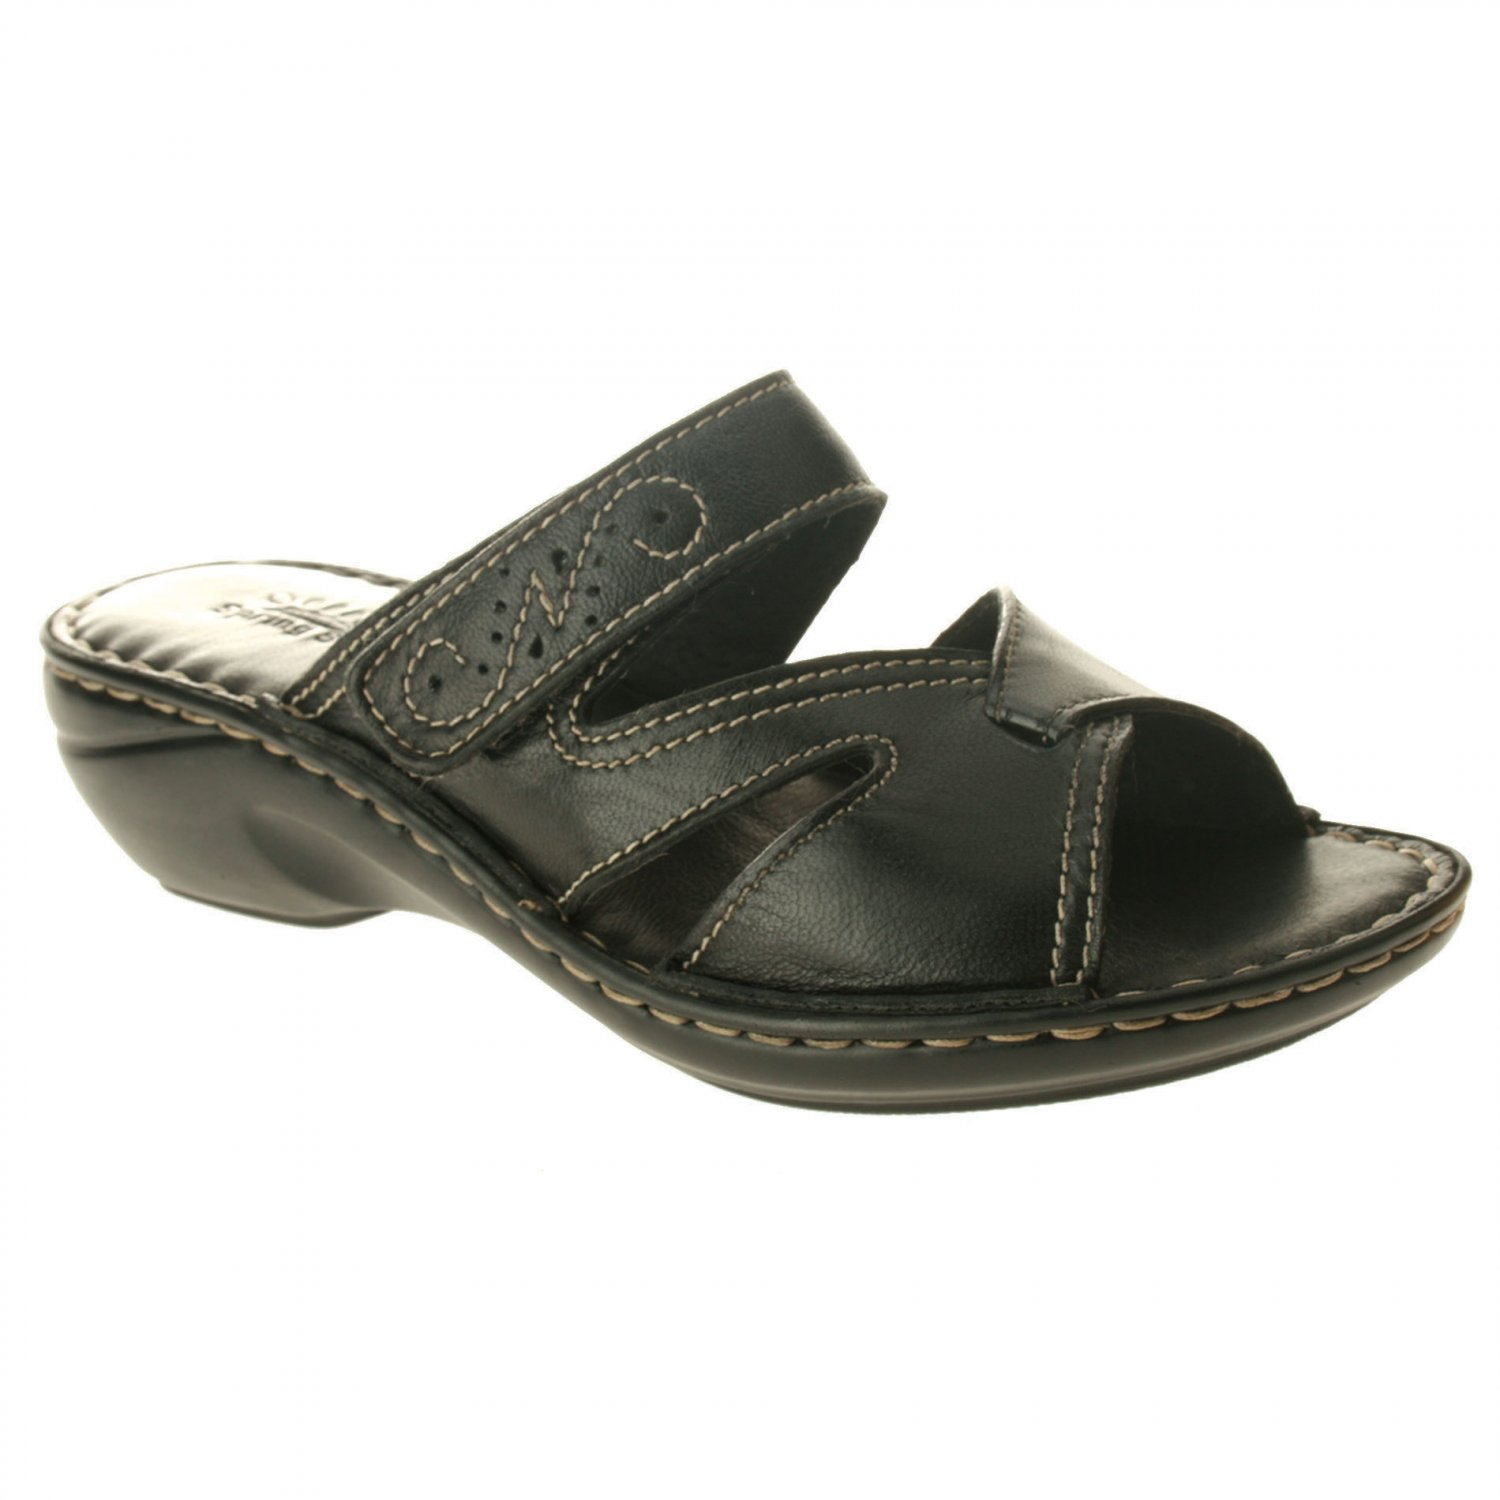 Spring Step CHARISSE Sandals Shoes All Sizes & Colors